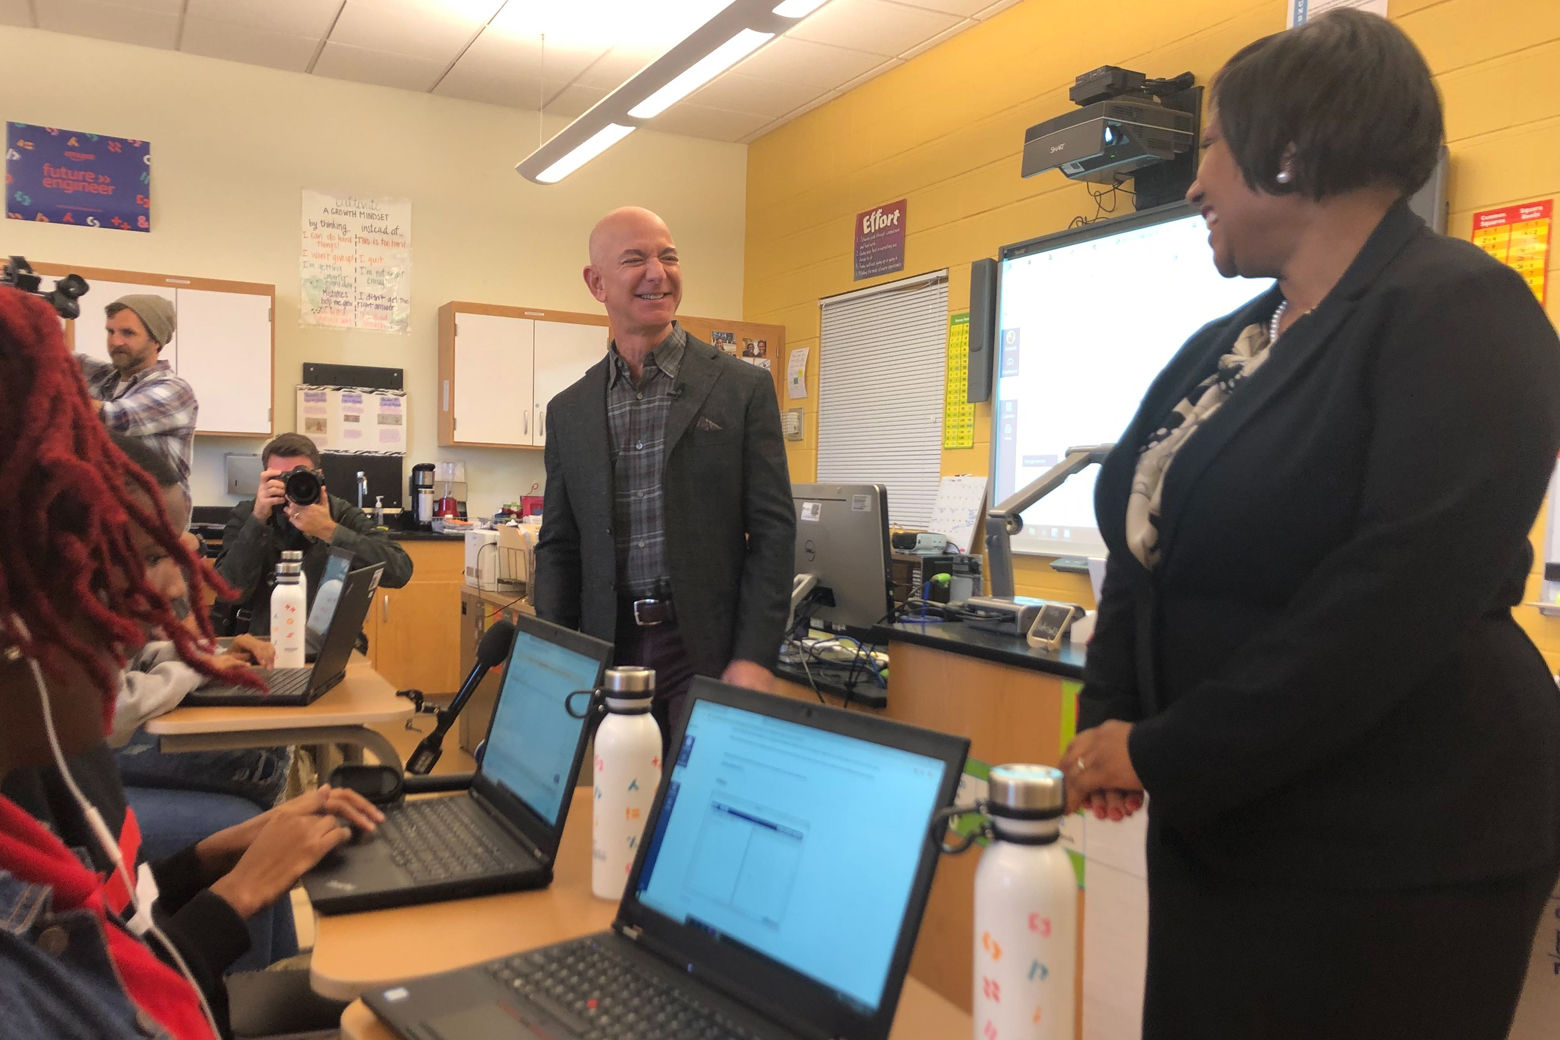 Amazon CEO Jeff Bezos shares a laugh with Dunbar computer science teacher Ramona Hutchins during his visit to her classroom. (WTOP/Melissa Howell)